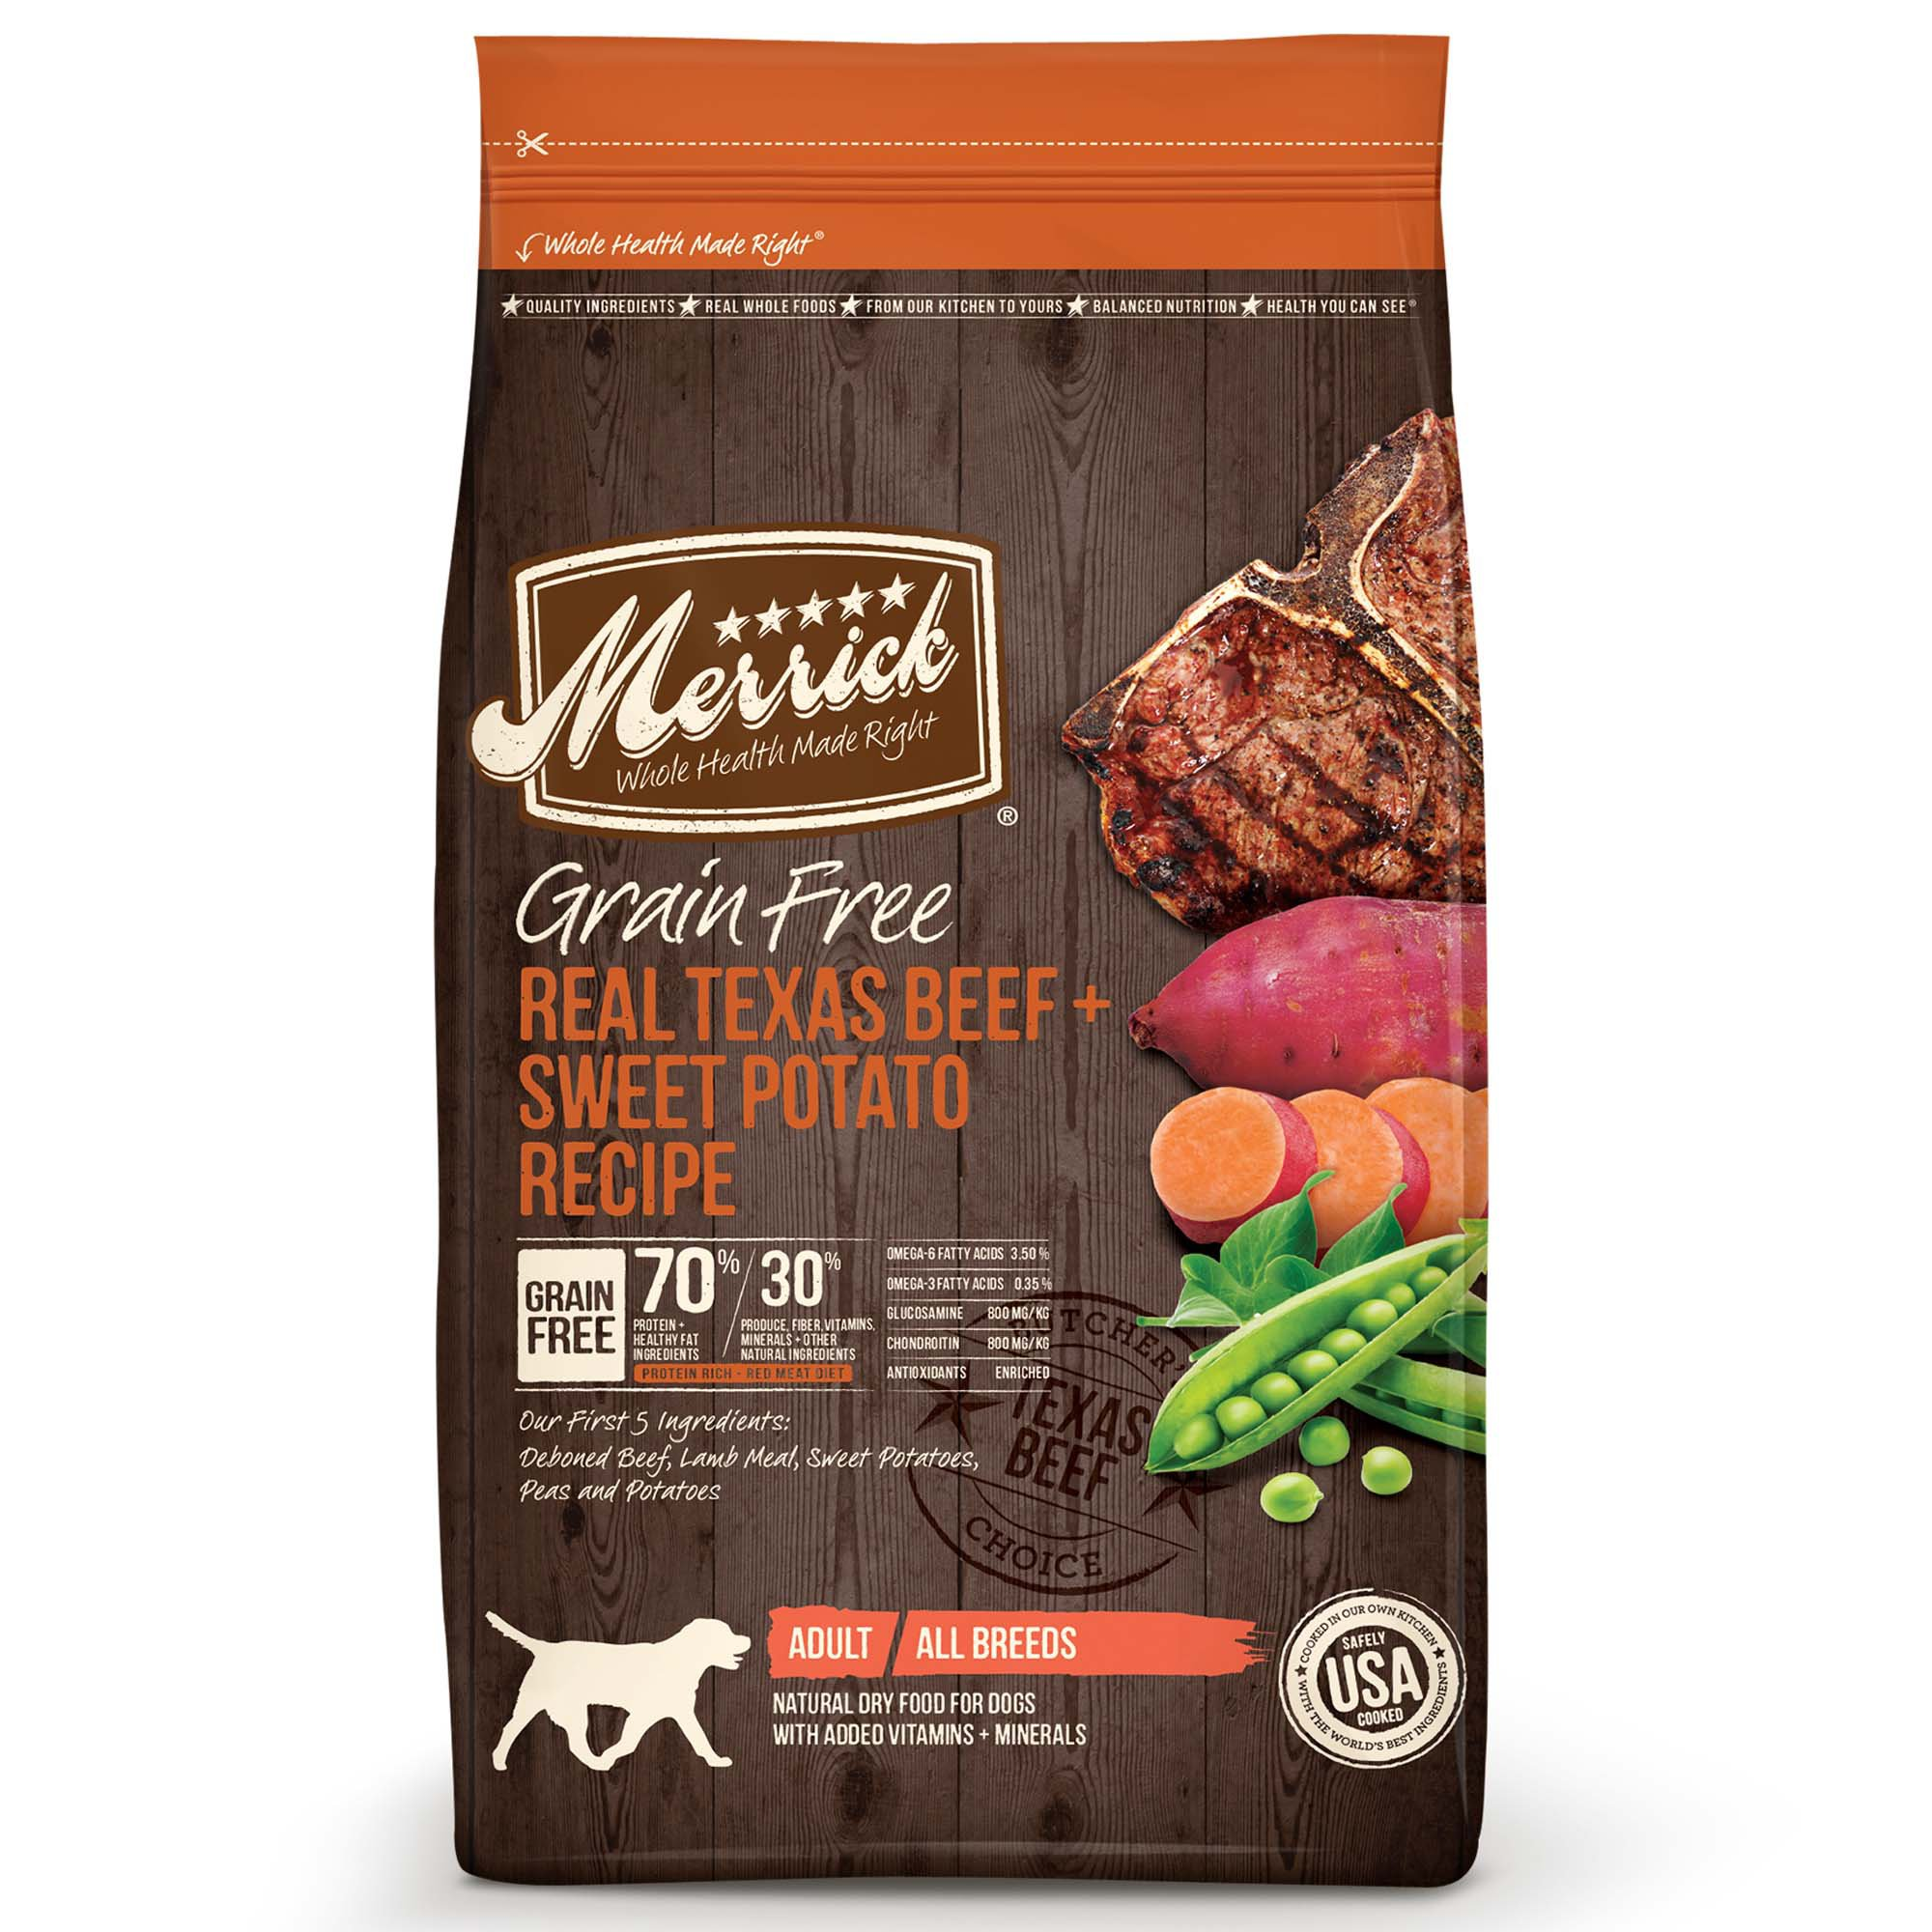 Merrick Grain Free Real Texas Beef + Sweet Potato Dry Dog Food | Petco | Tuggl